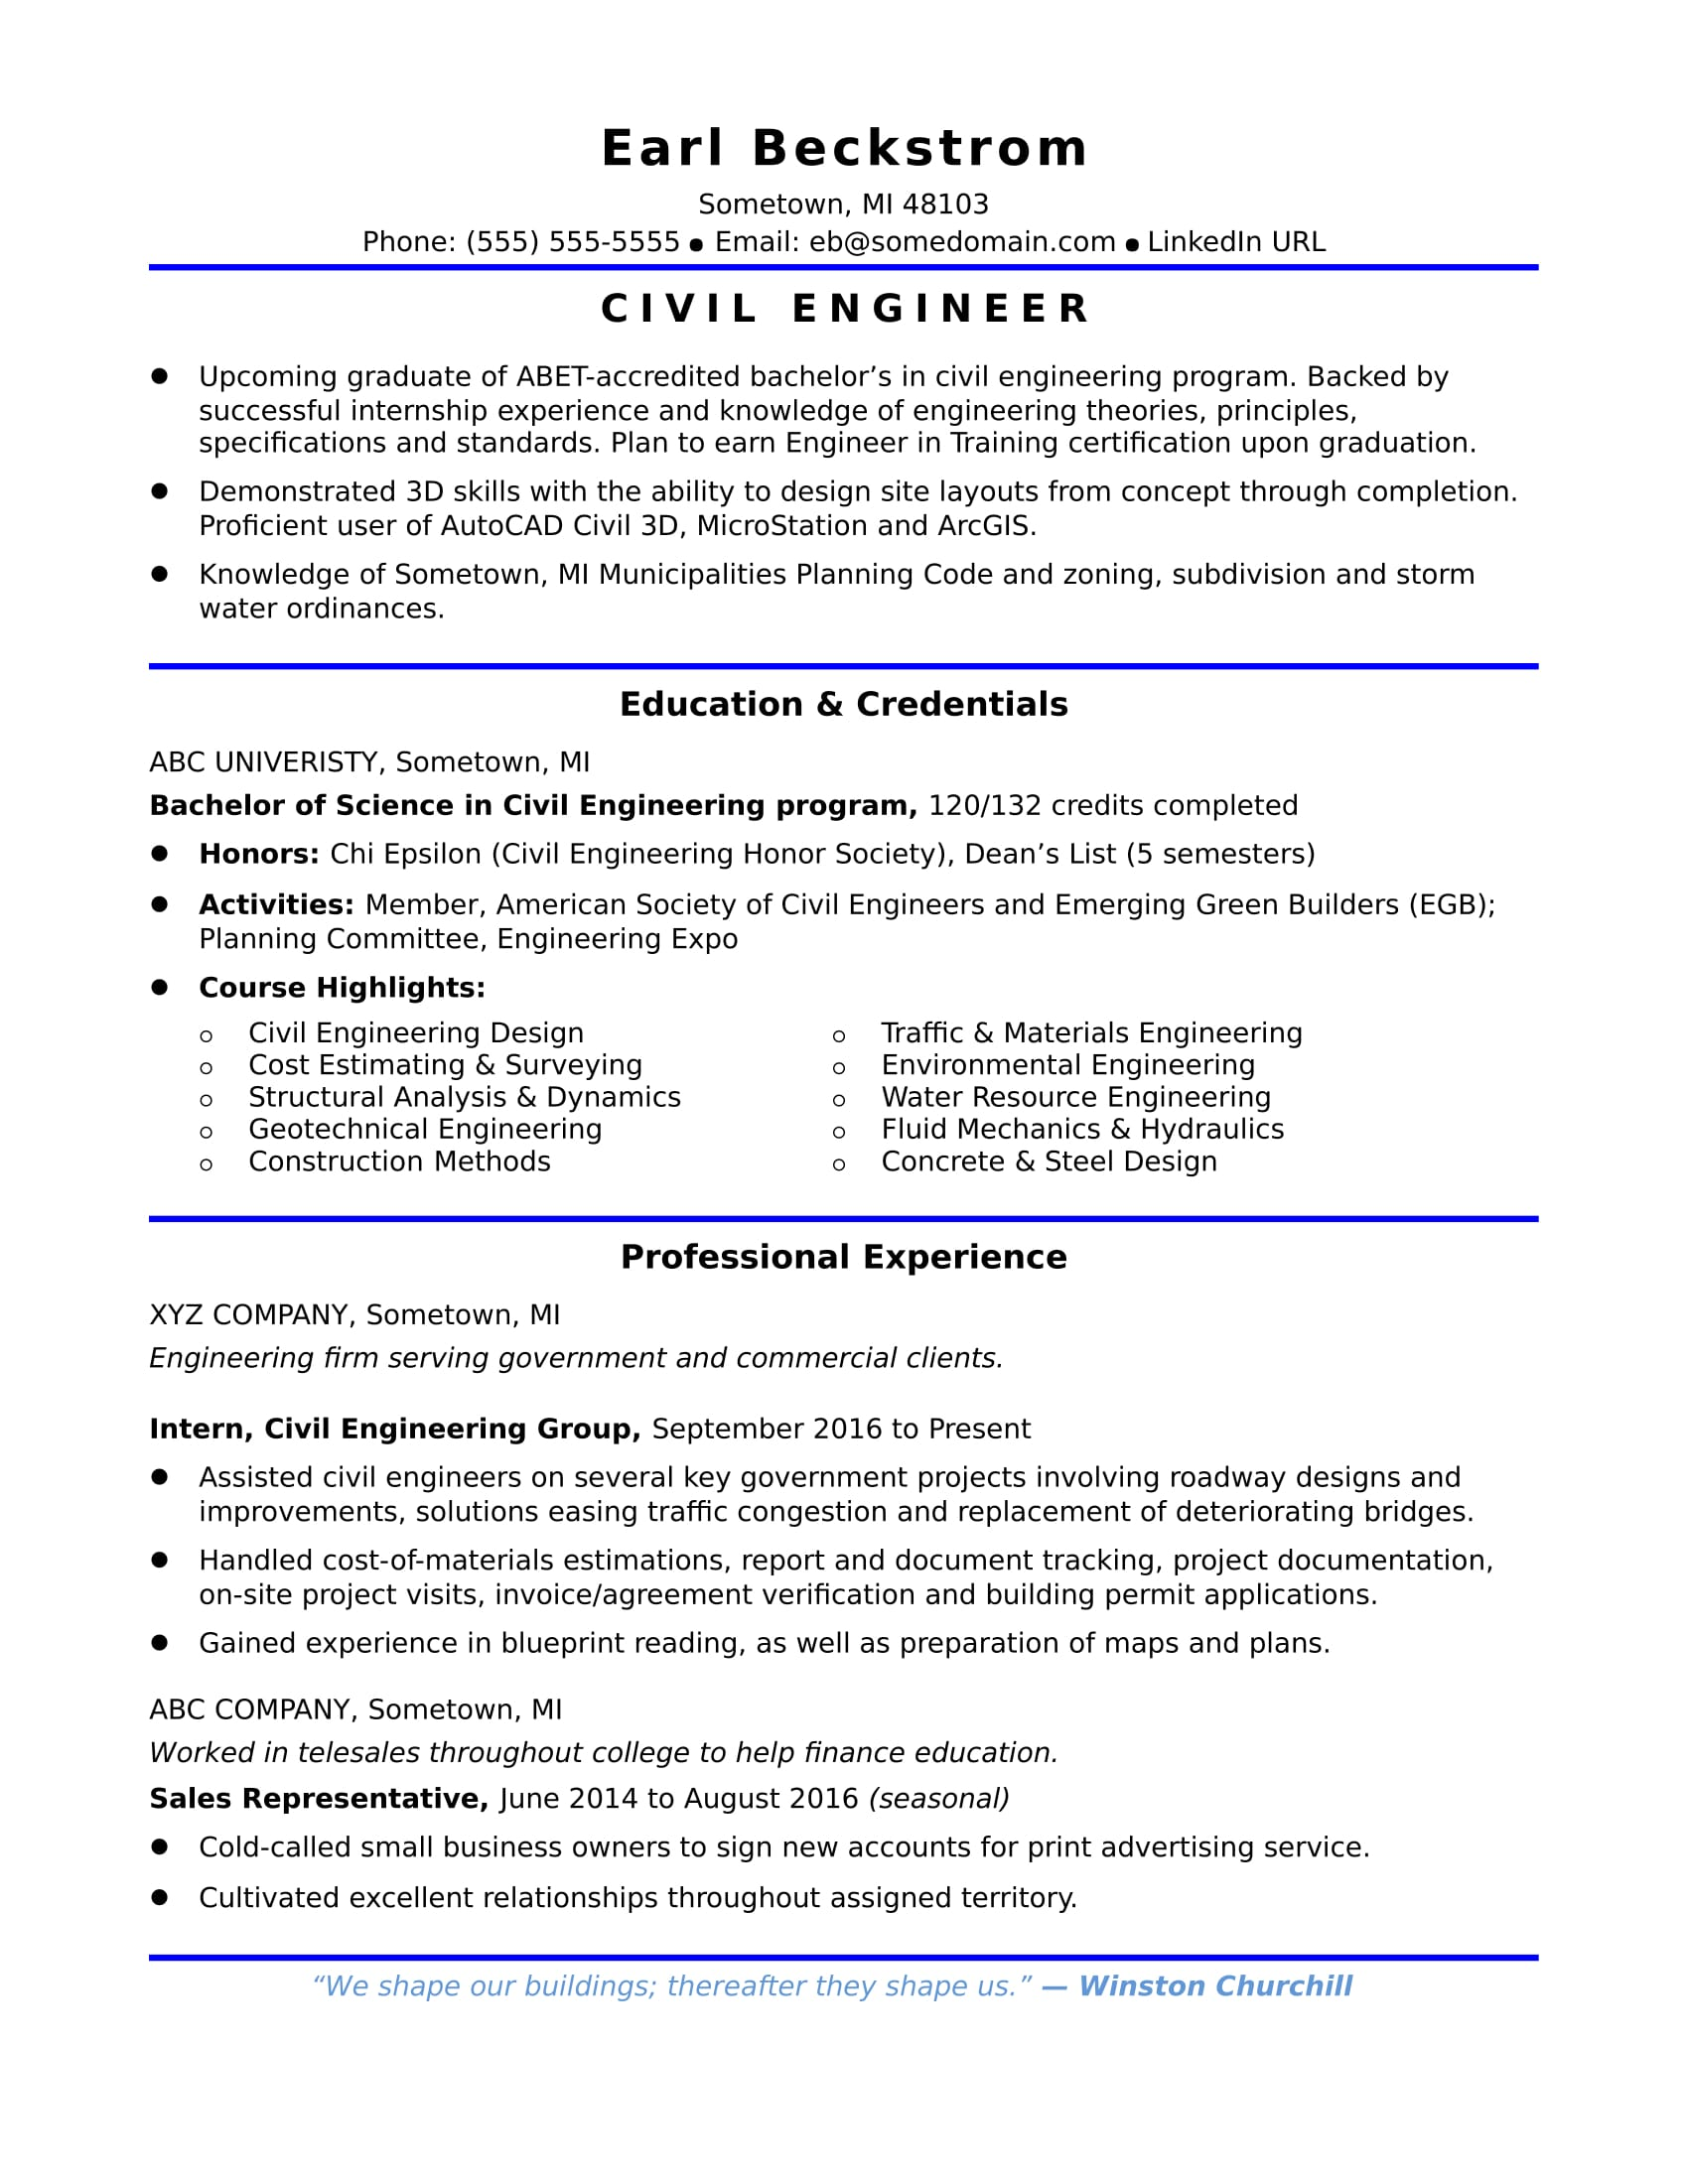 template for senior level civil engineer resume